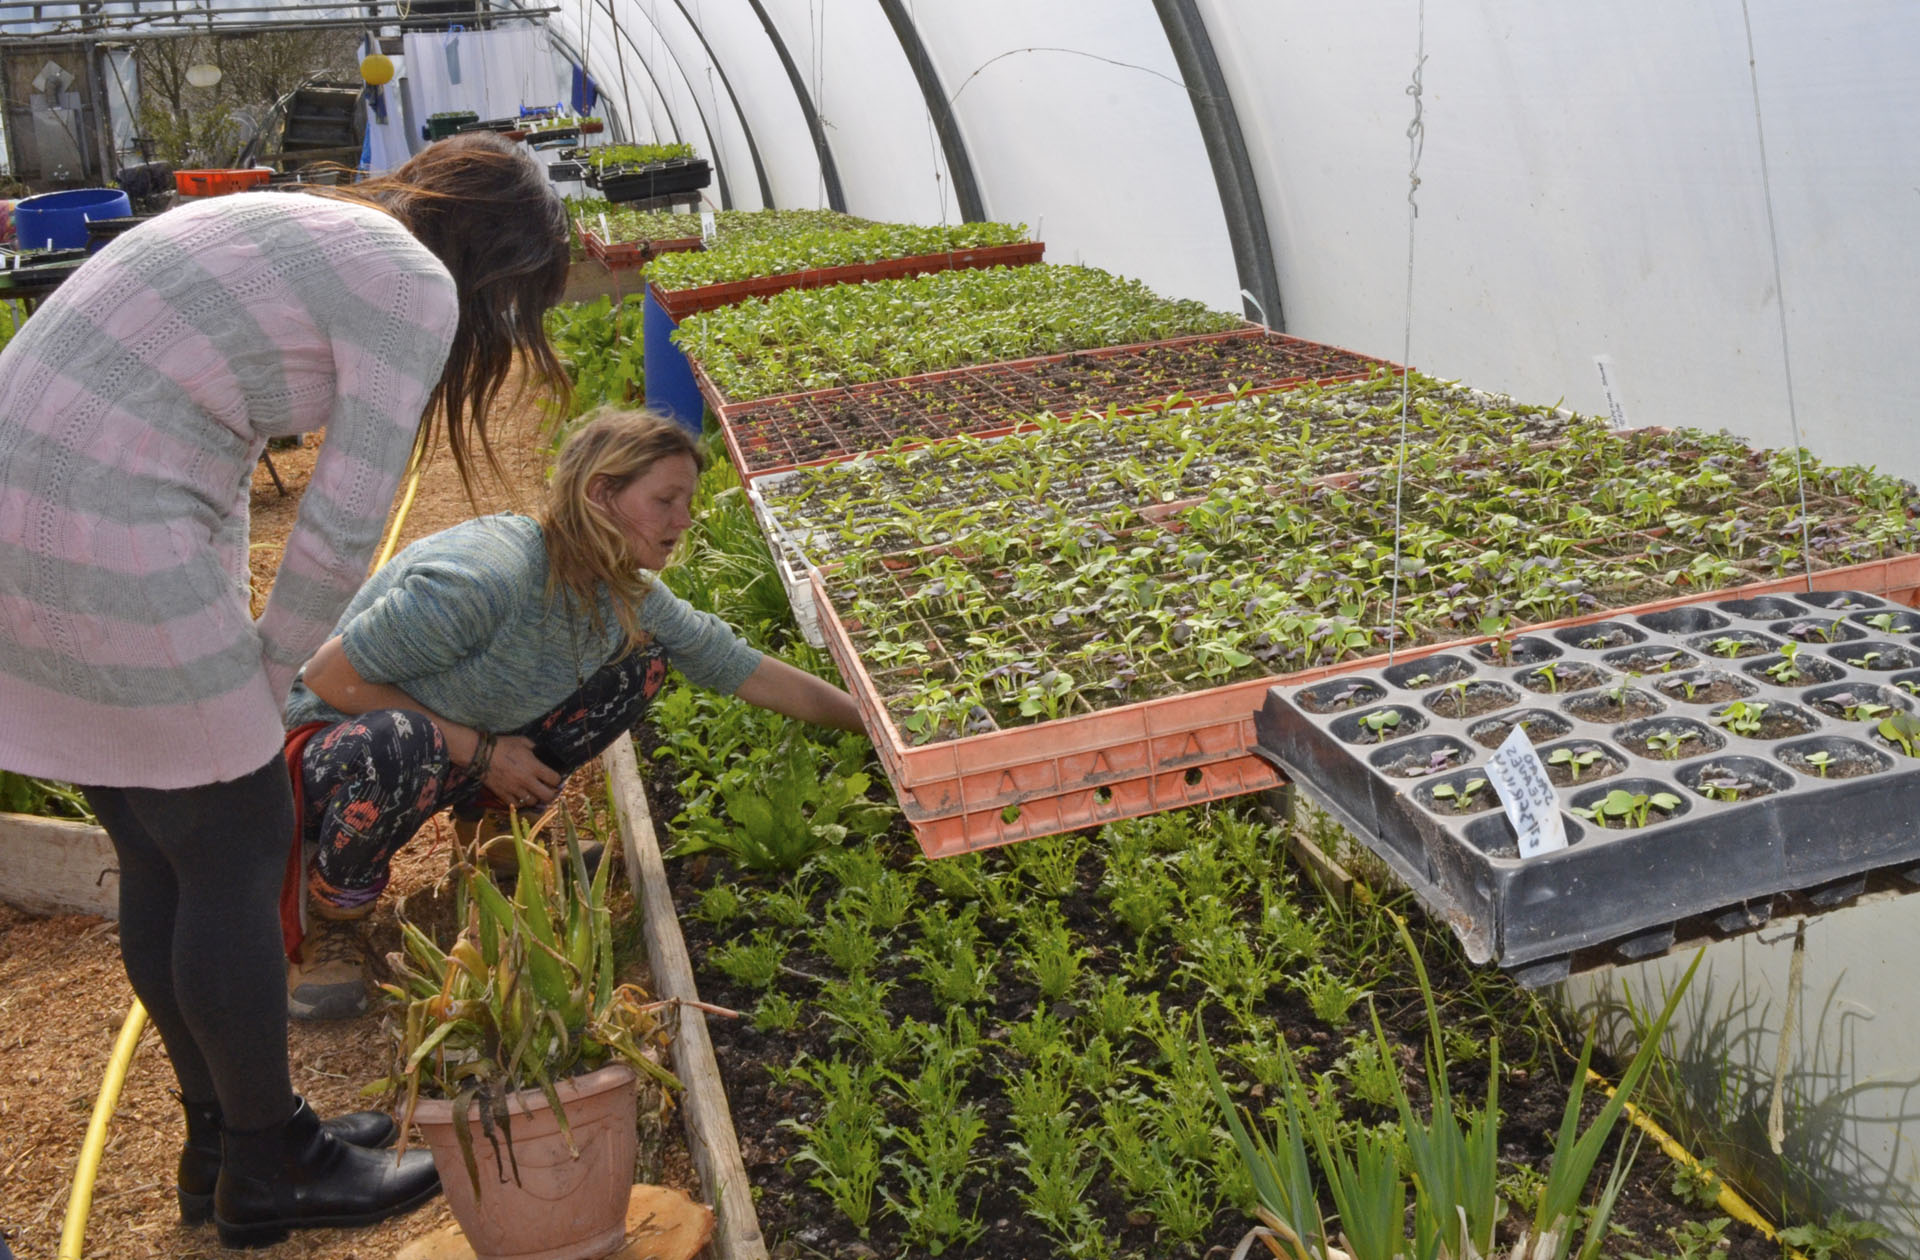 Seedlings in polytunnel